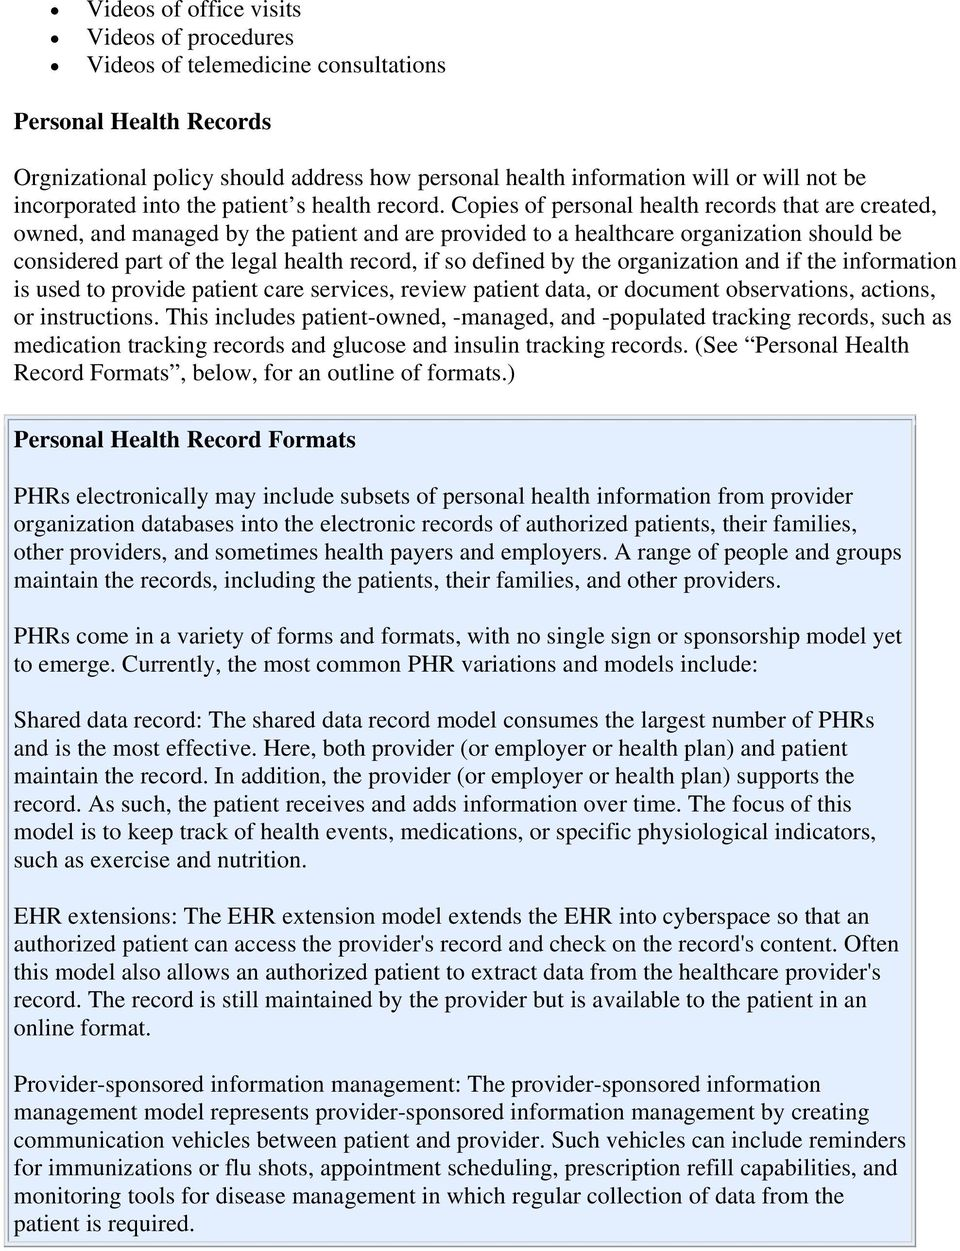 guidelines for defining the legal health record for disclosure